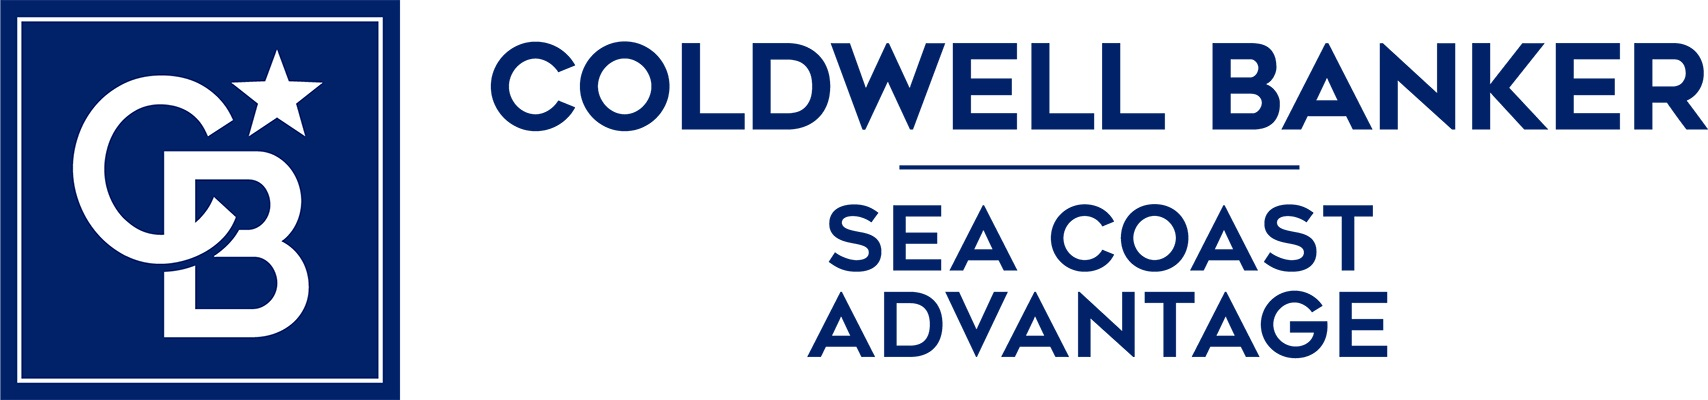 John Hoopes - Coldwell Banker Sea Coast Advantage Realty